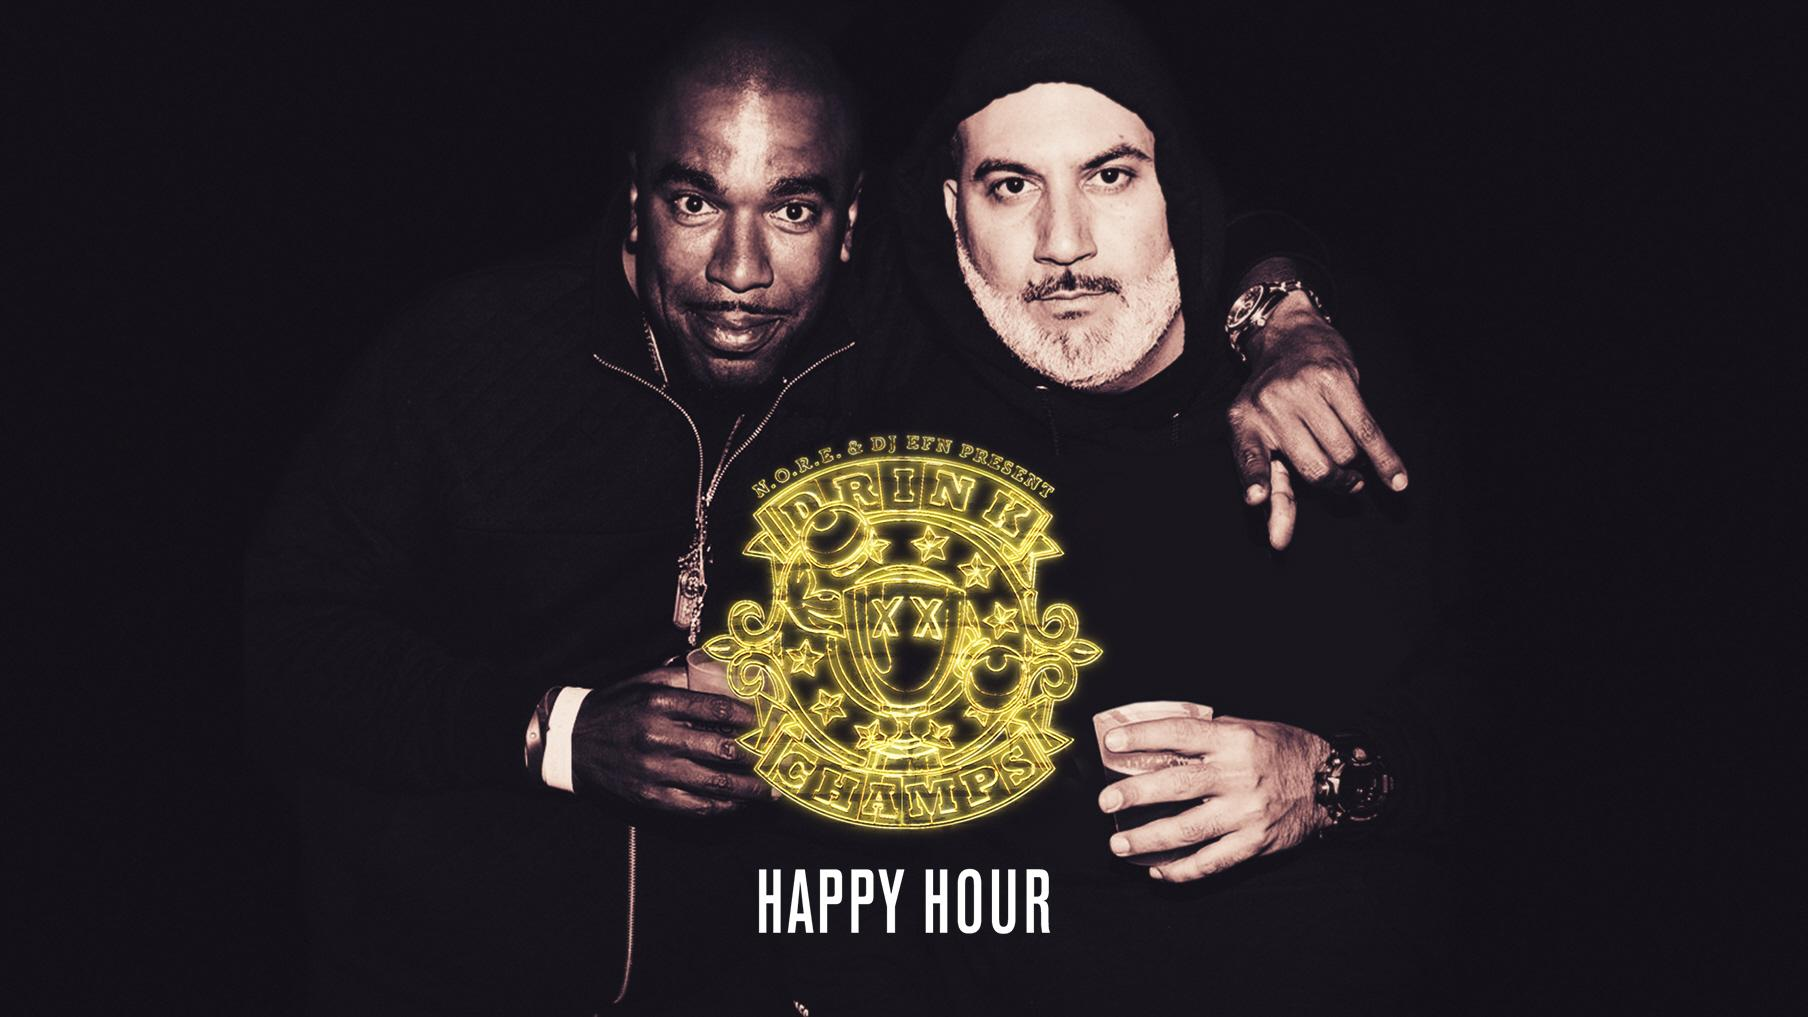 Stream And Watch Drink Champs: Happy Hour Online | Sling TV